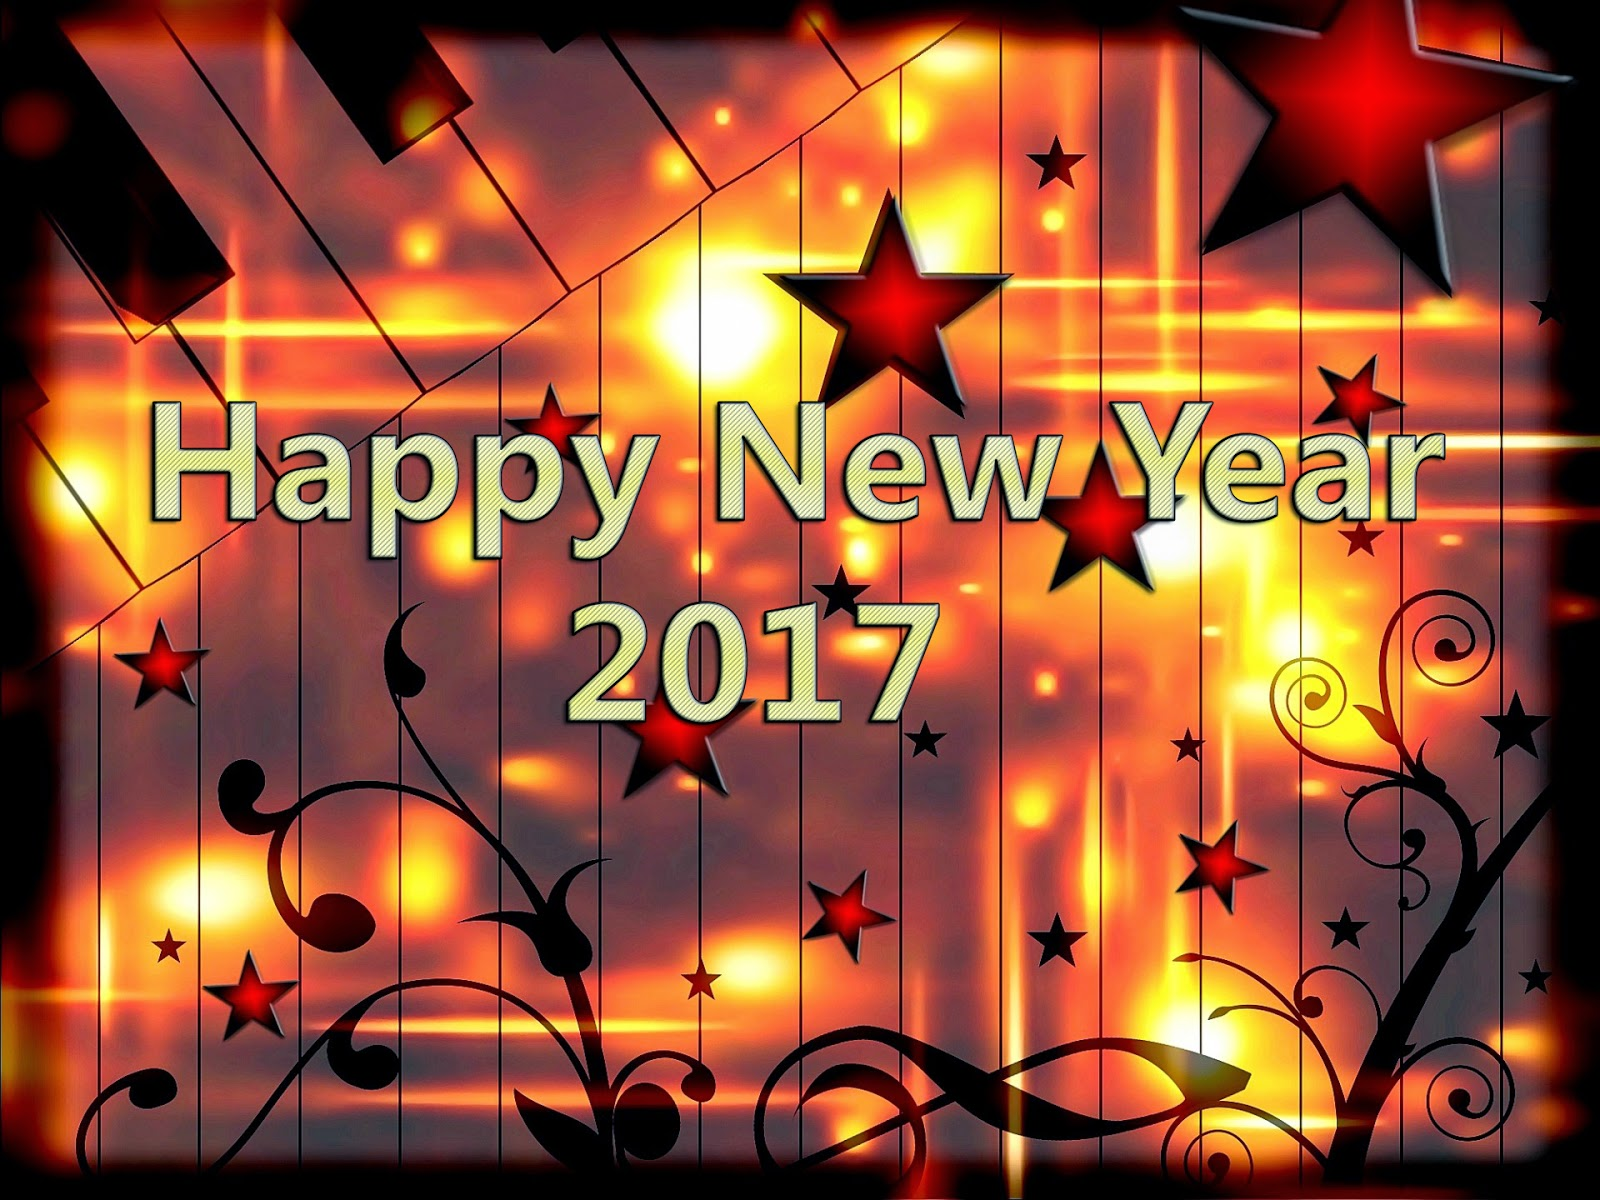 Happy new year 2017 july 2016 happynewyear2017images kristyandbryce Image collections